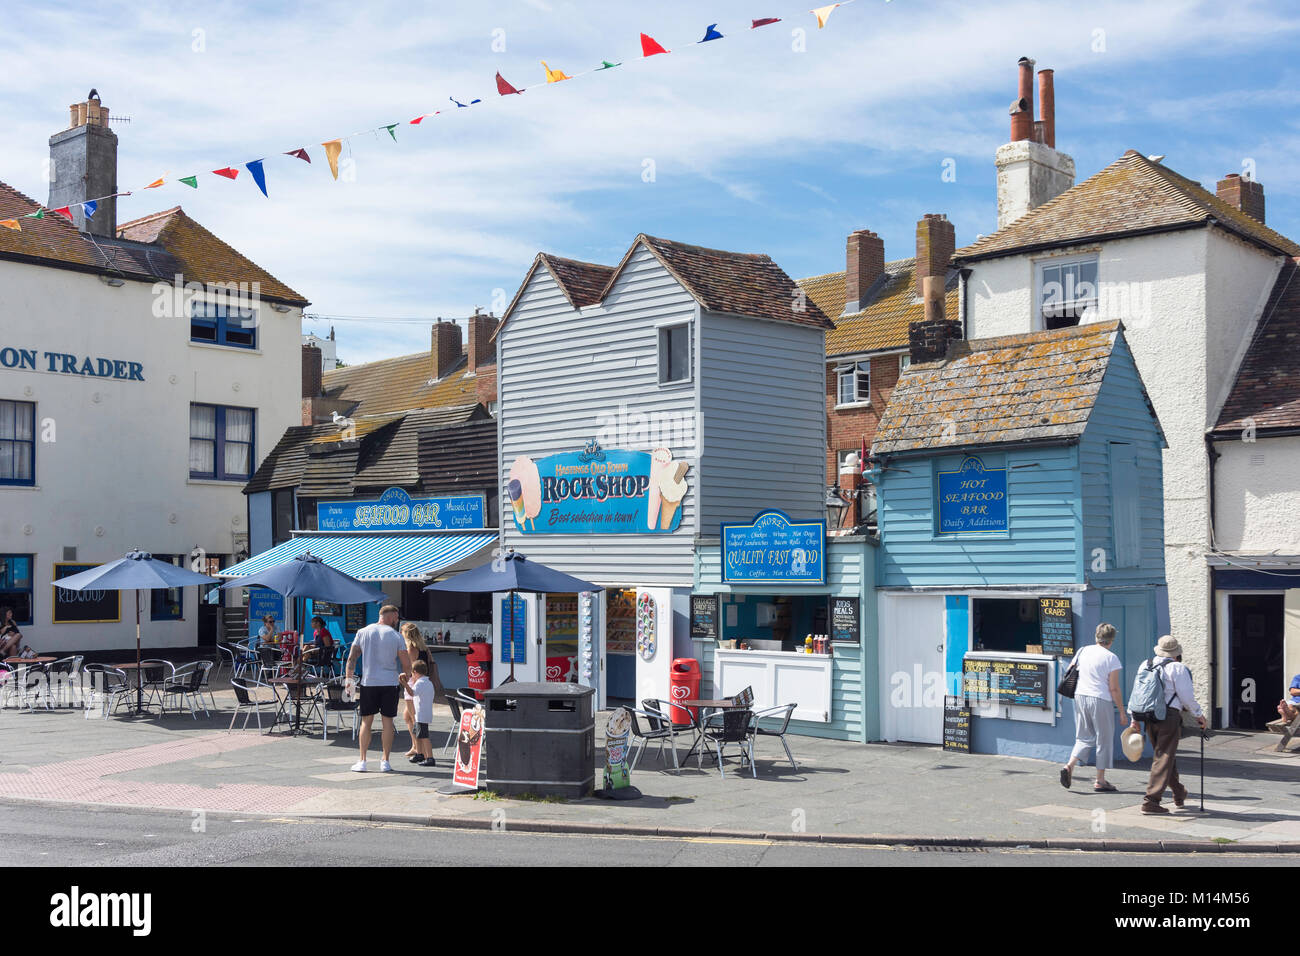 The Rock Shop seafood bar, Hastings Old Town, East Beach Street, Hastings, East Sussex, England, United Kingdom - Stock Image